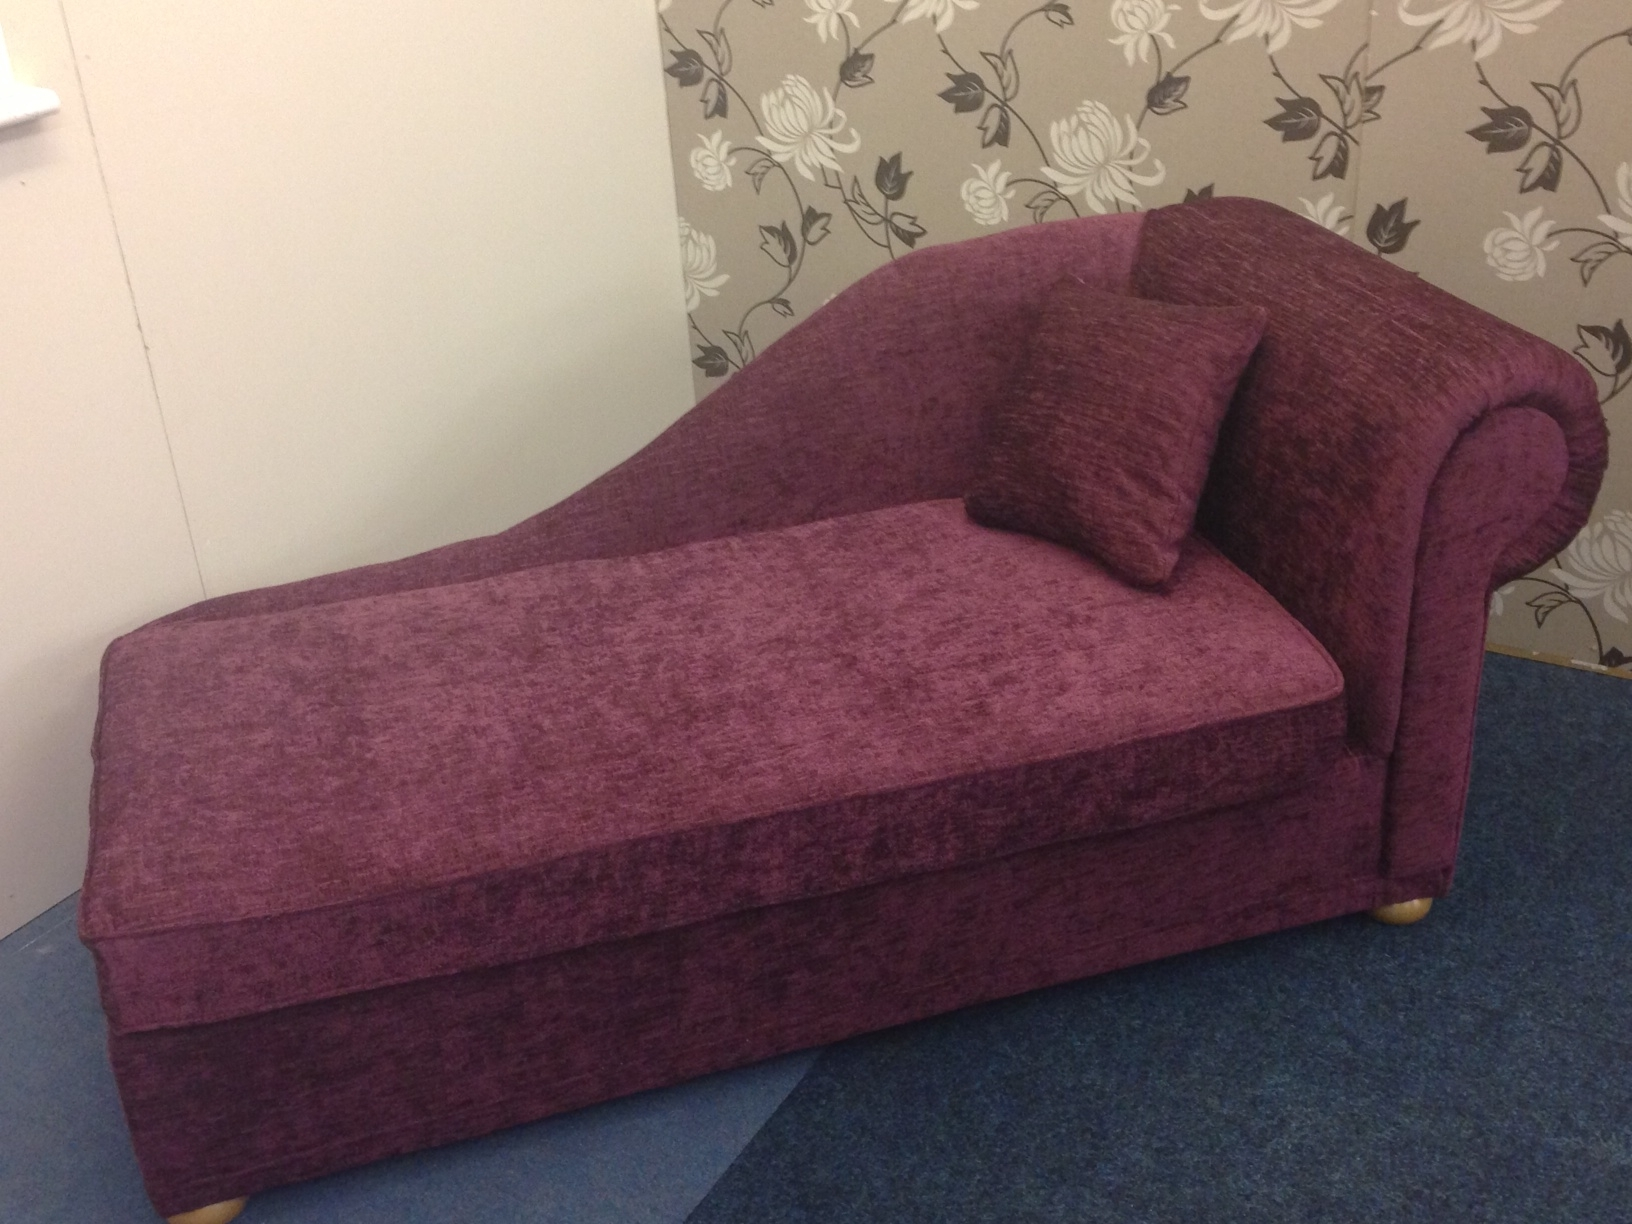 Catosfera Regarding Chaise Lounge Sofa Beds (View 2 of 15)